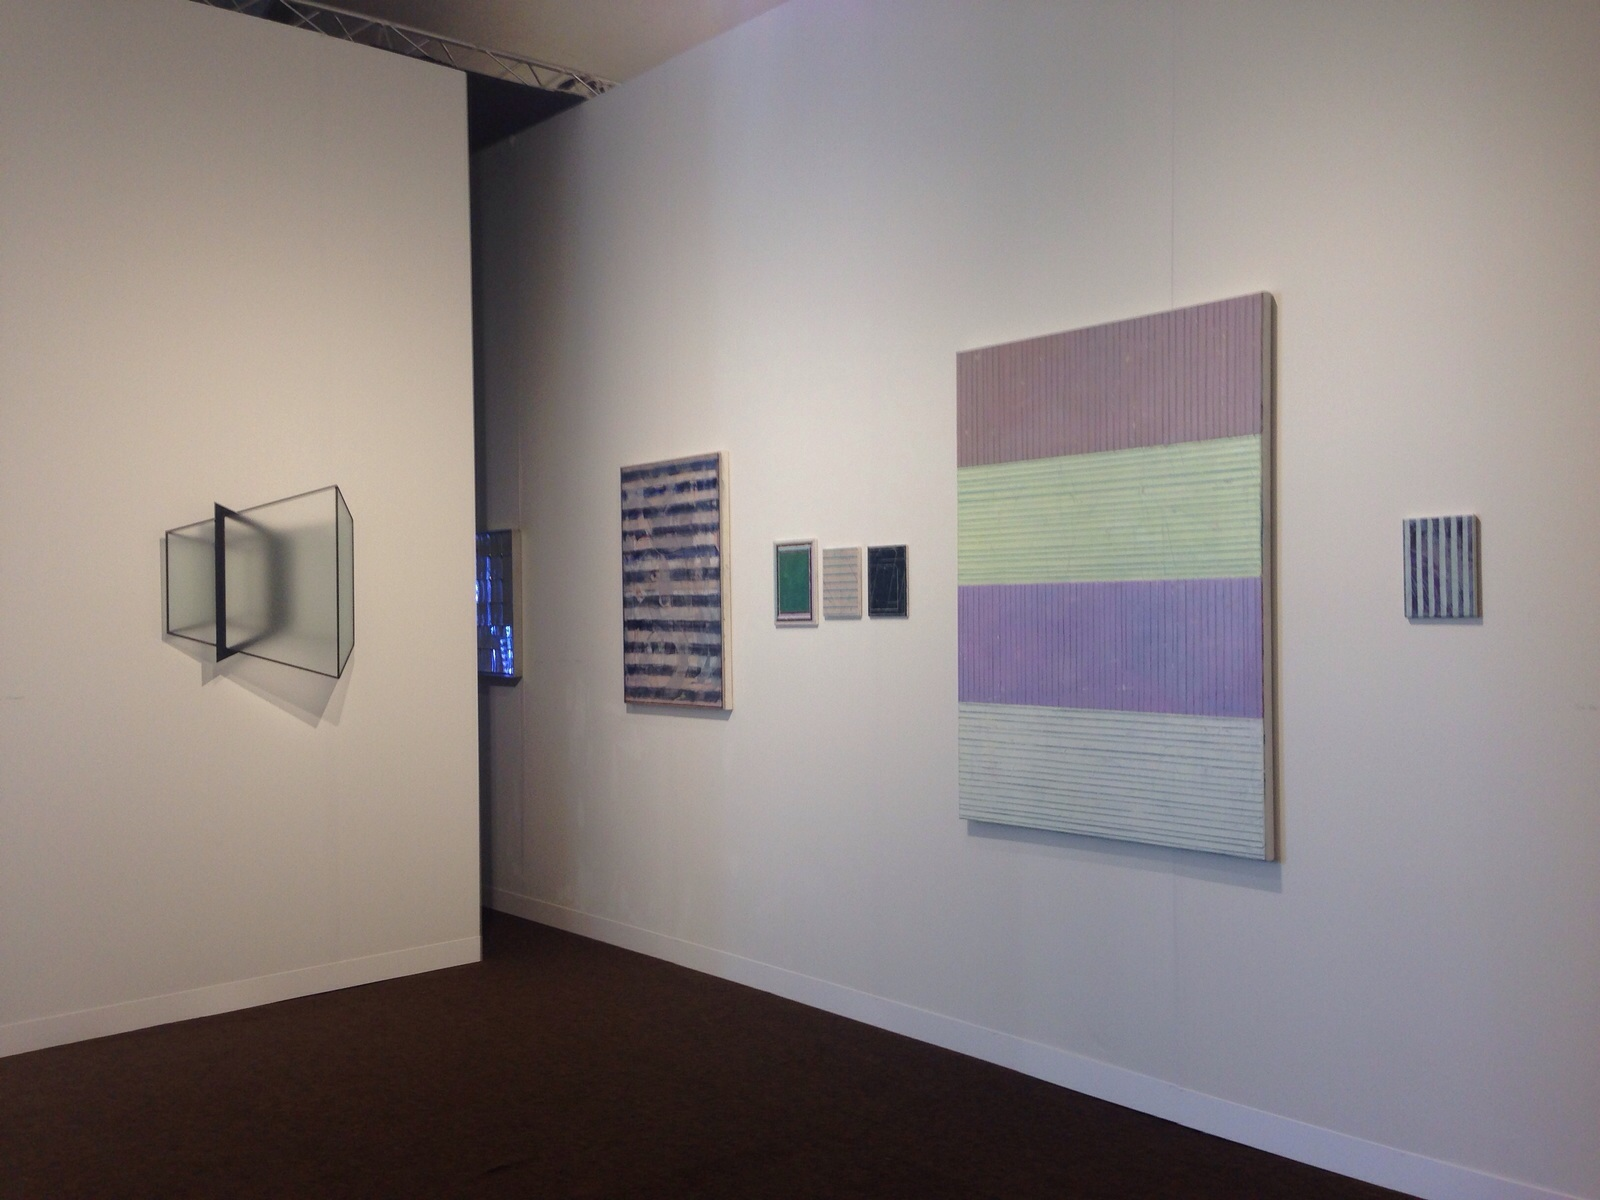 Reinoud Oudshoorn and Pius Fox; Installation view at Pulse Miami 2015